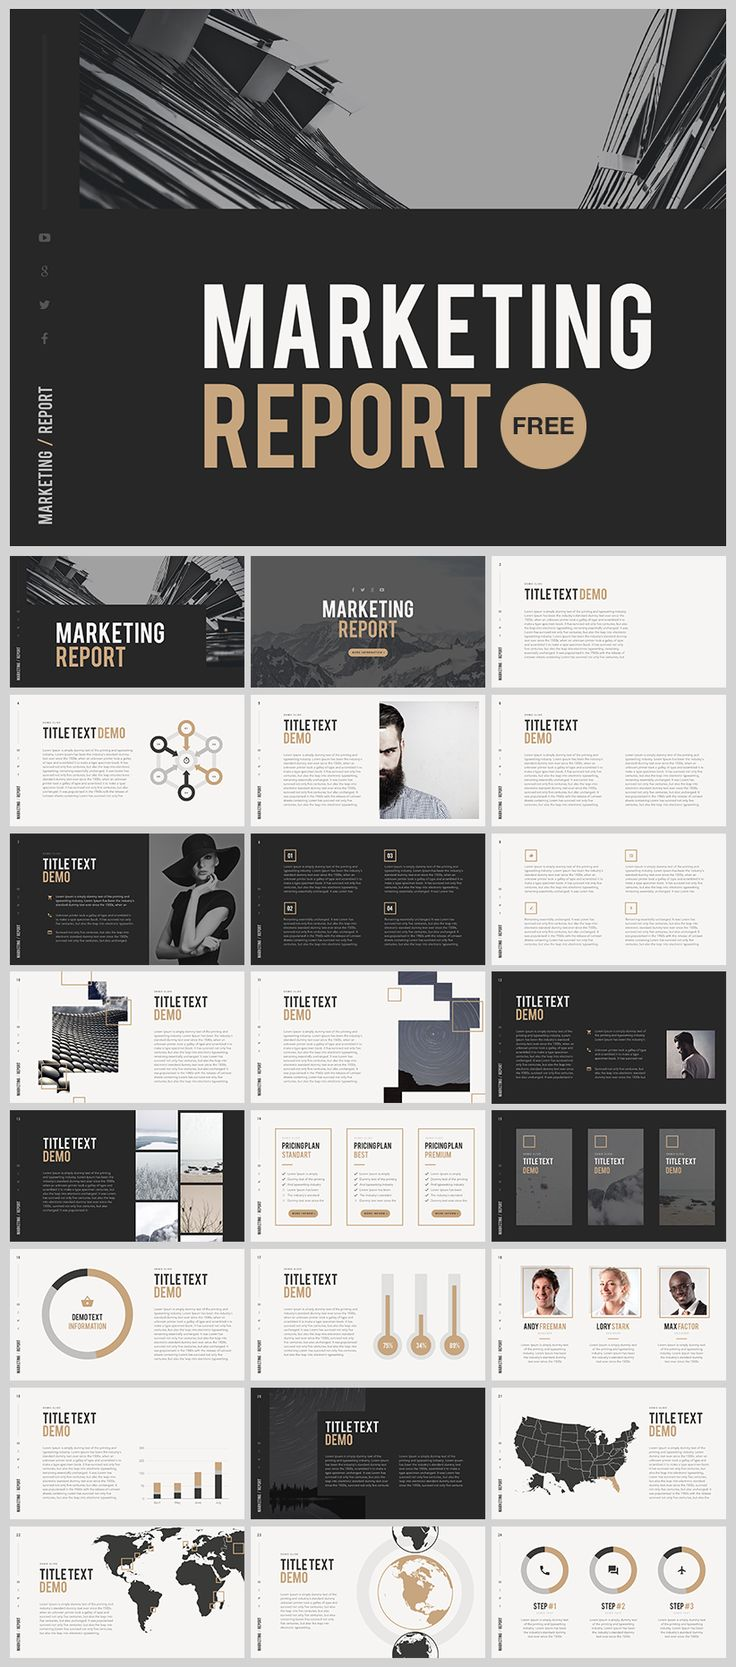 40 best free powerpoint template images on pinterest free stencils free powerpoint template marketing report link httpshislide toneelgroepblik Gallery